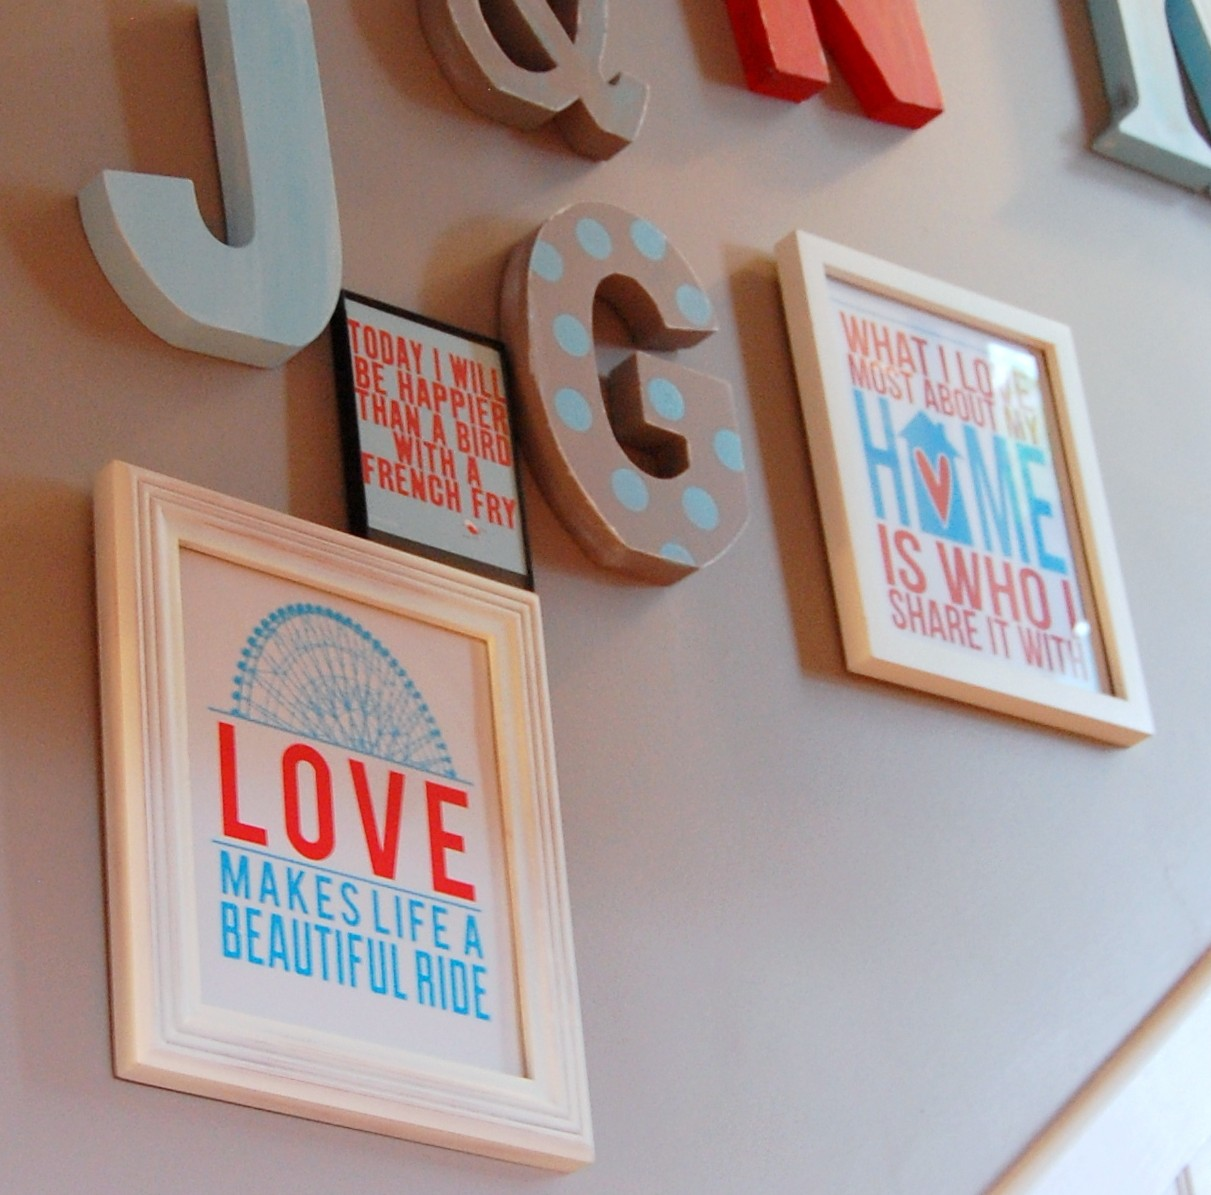 Do It Yourself Home Decorating Ideas: Free Printables: Do-it-Yourself Wall Art Idea #6 (of 31